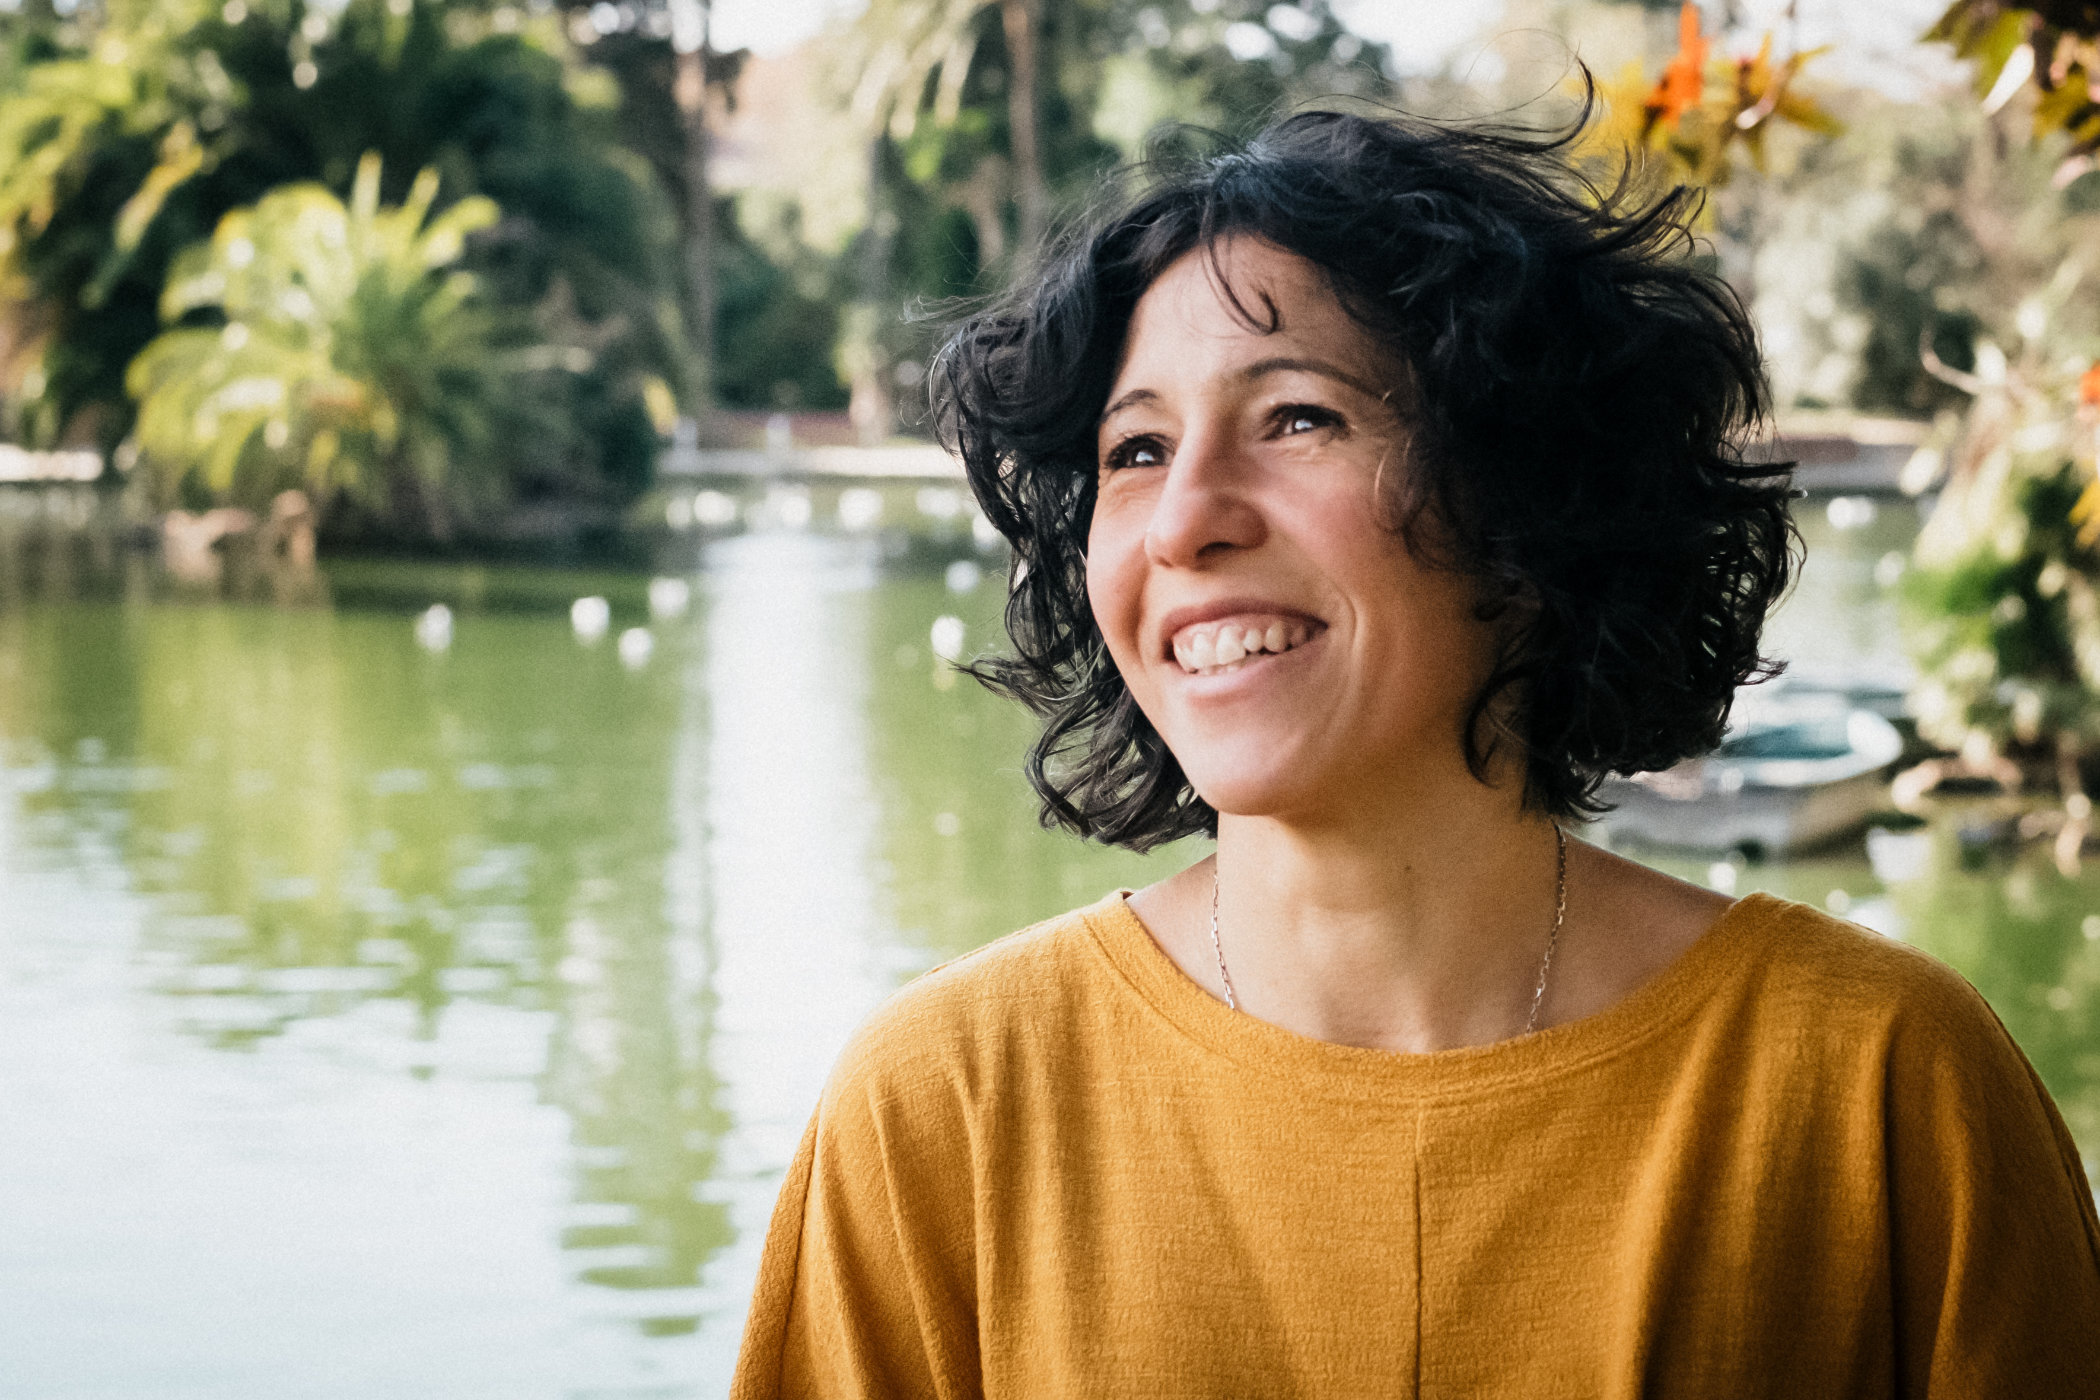 A woman laughing in a park with a lake Ciutadella park at Barcelona, solo portrait picture by Pauline Mattia